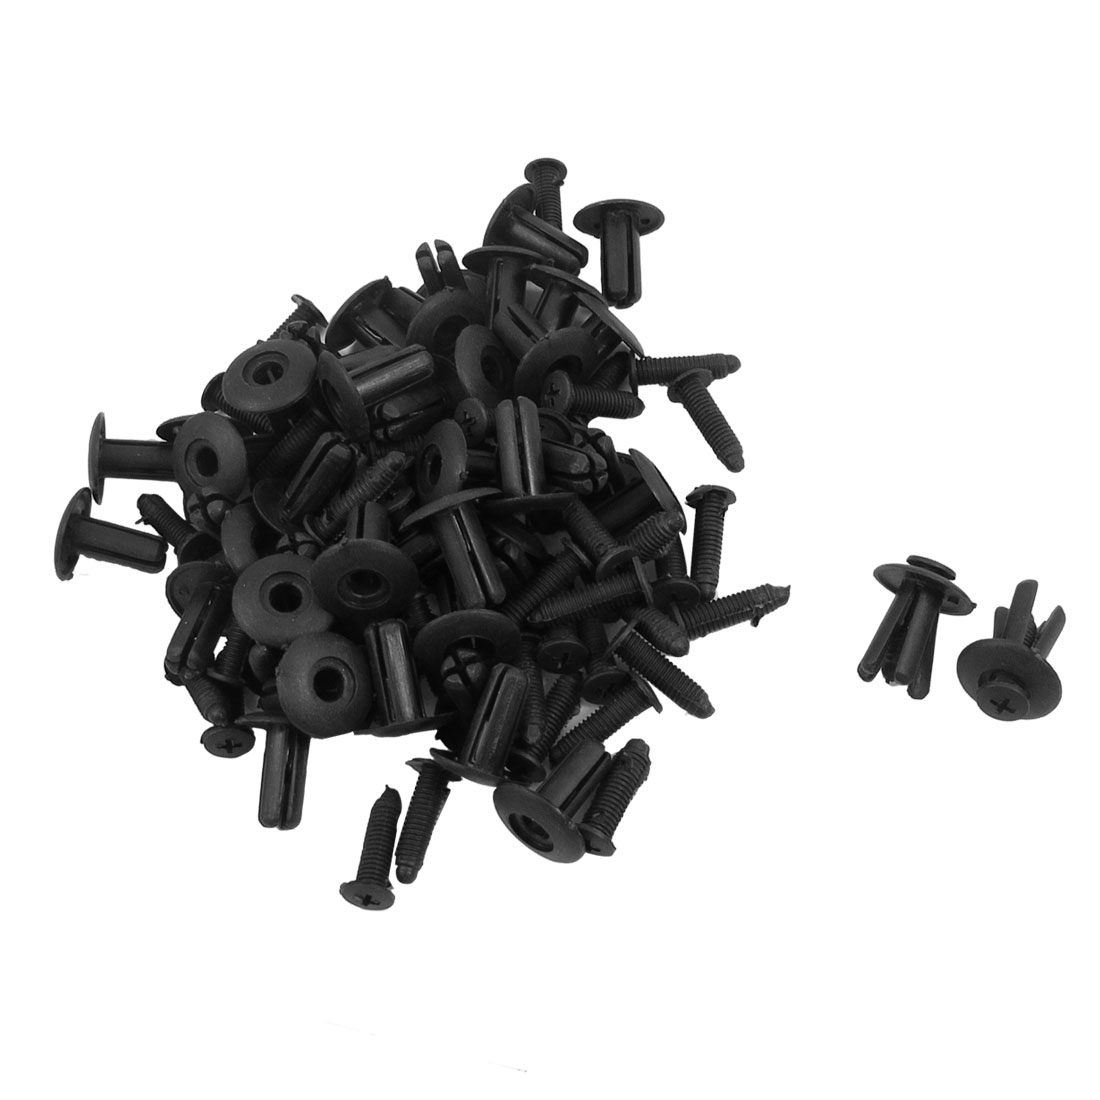 50 Pcs Auto Car Fender Black Plastic Rivets Retainer Clips 20 x 23 x 8mm